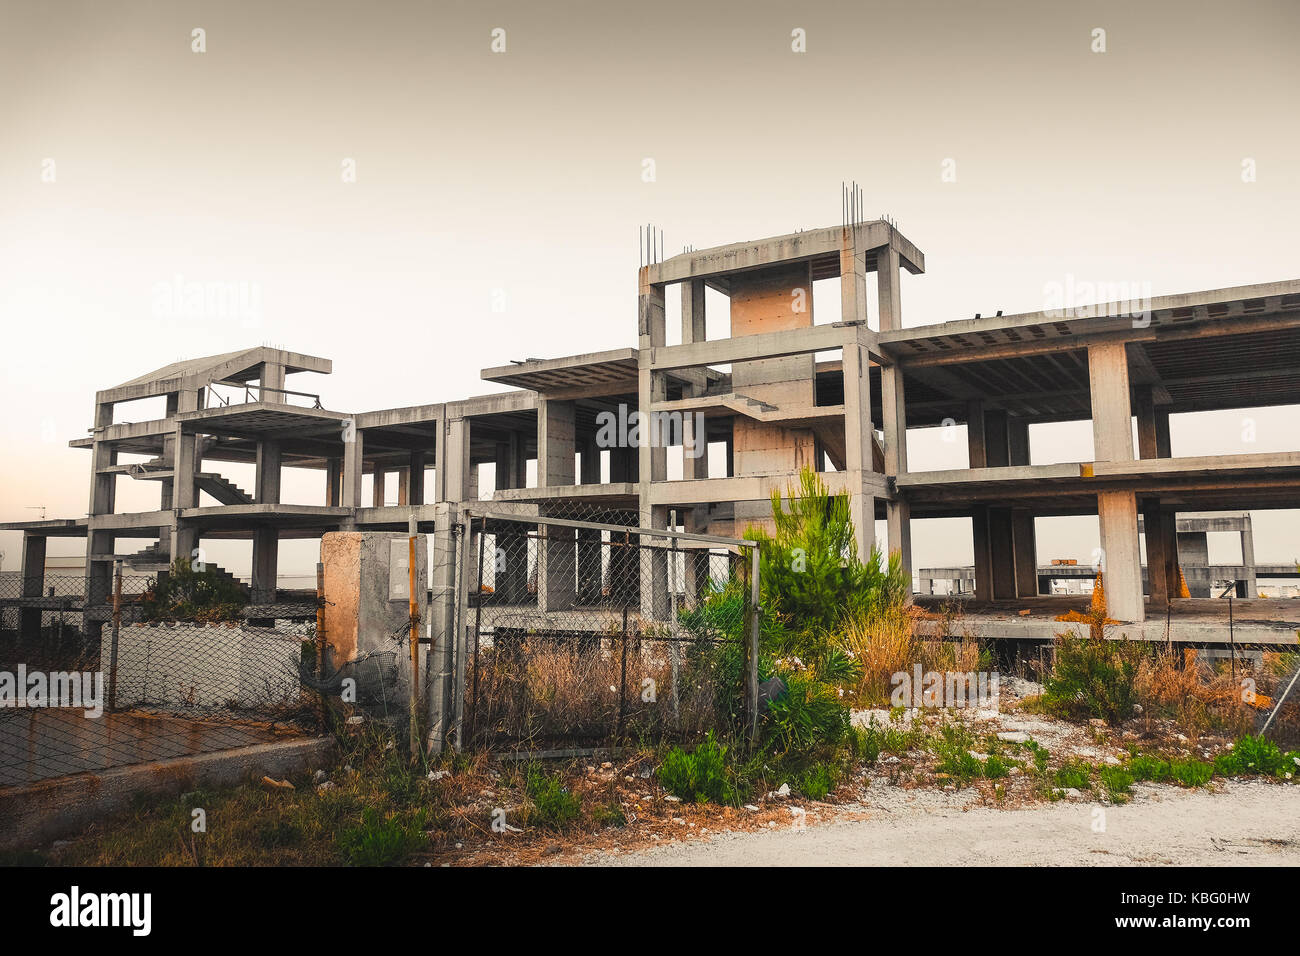 illegal building in Italy - example of italian abuse architecture - Stock Image